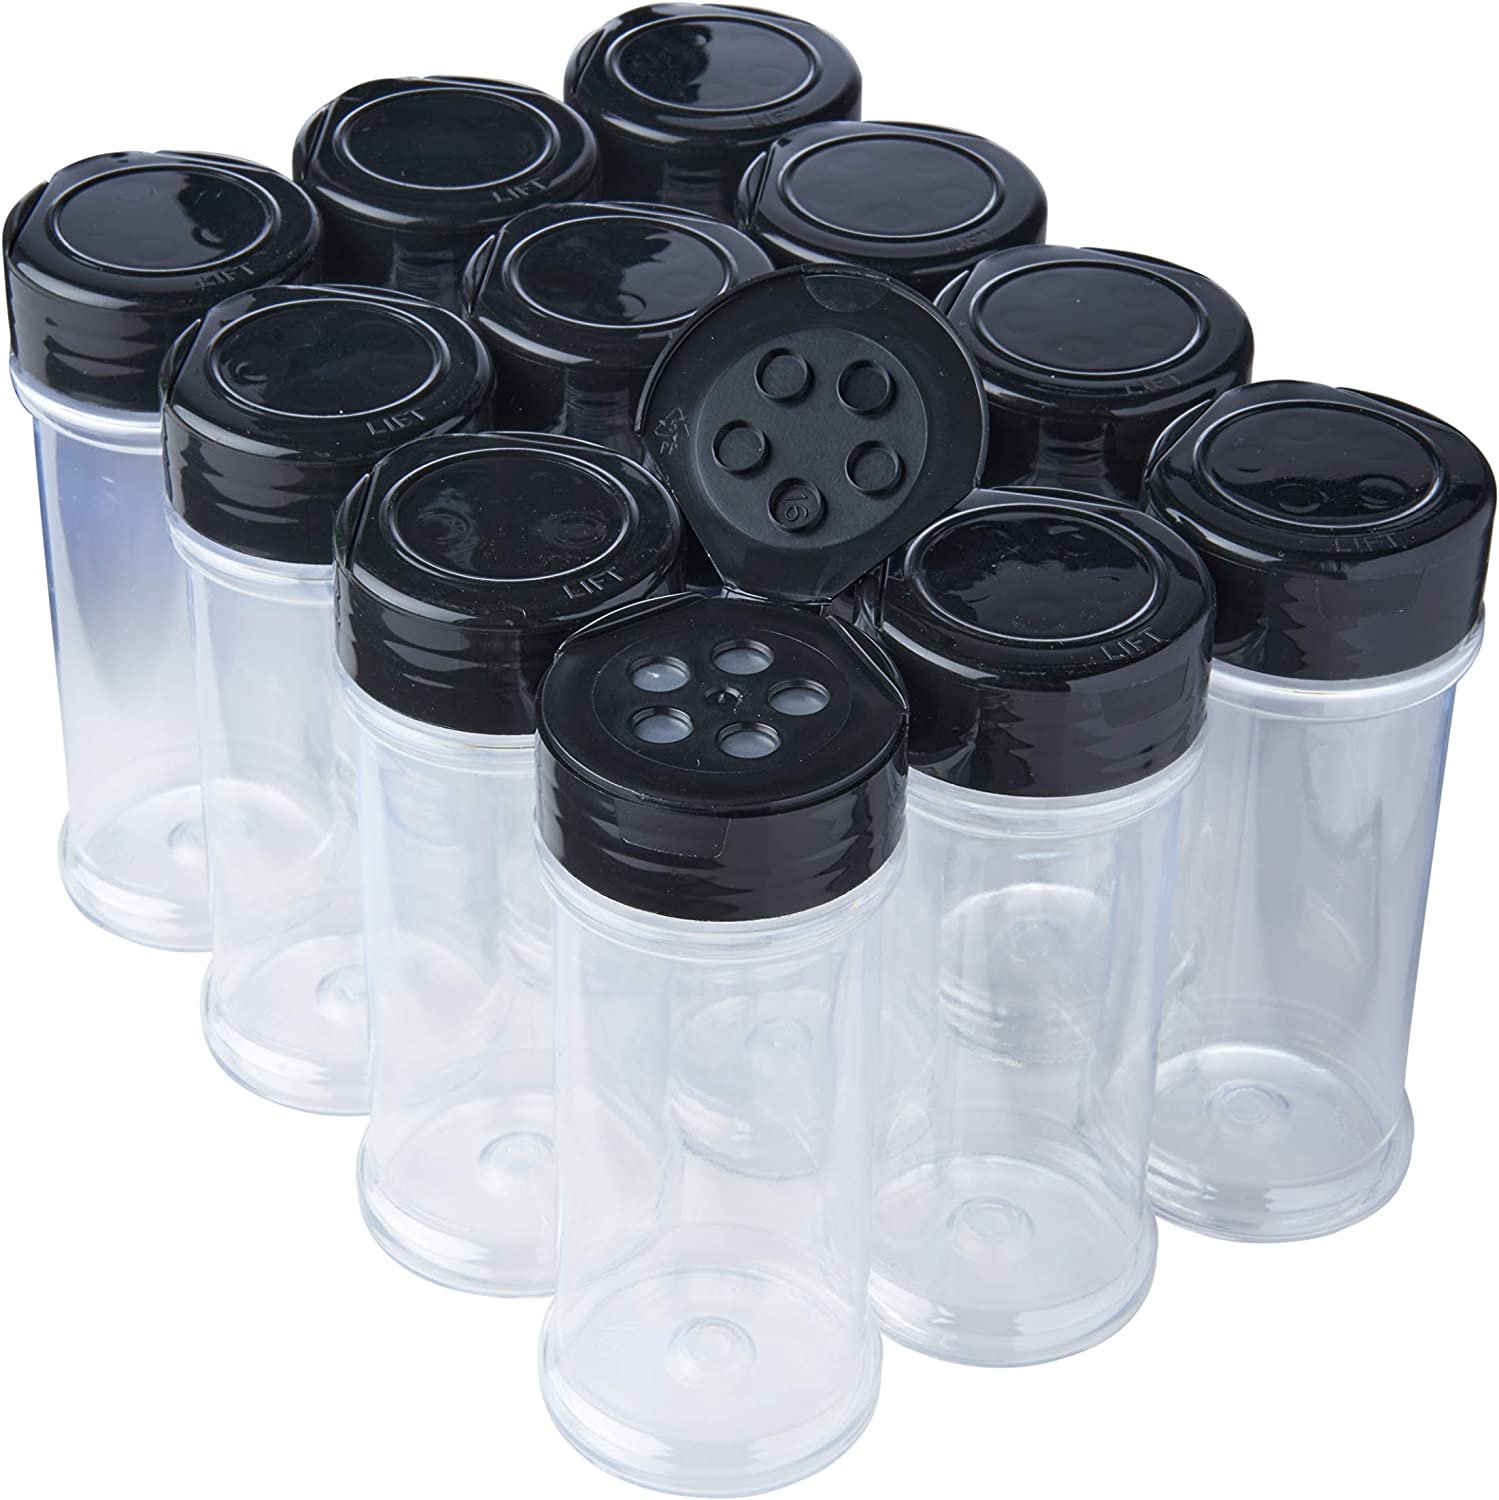 12 Pack of 6 Oz. Empty Clear Plastic Spice Bottles with Black Top Lids For Storing and Dispensing Salt, Sweeteners and Spices - Food-Grade Spice Jars for Kitchen and Home Spice Organization